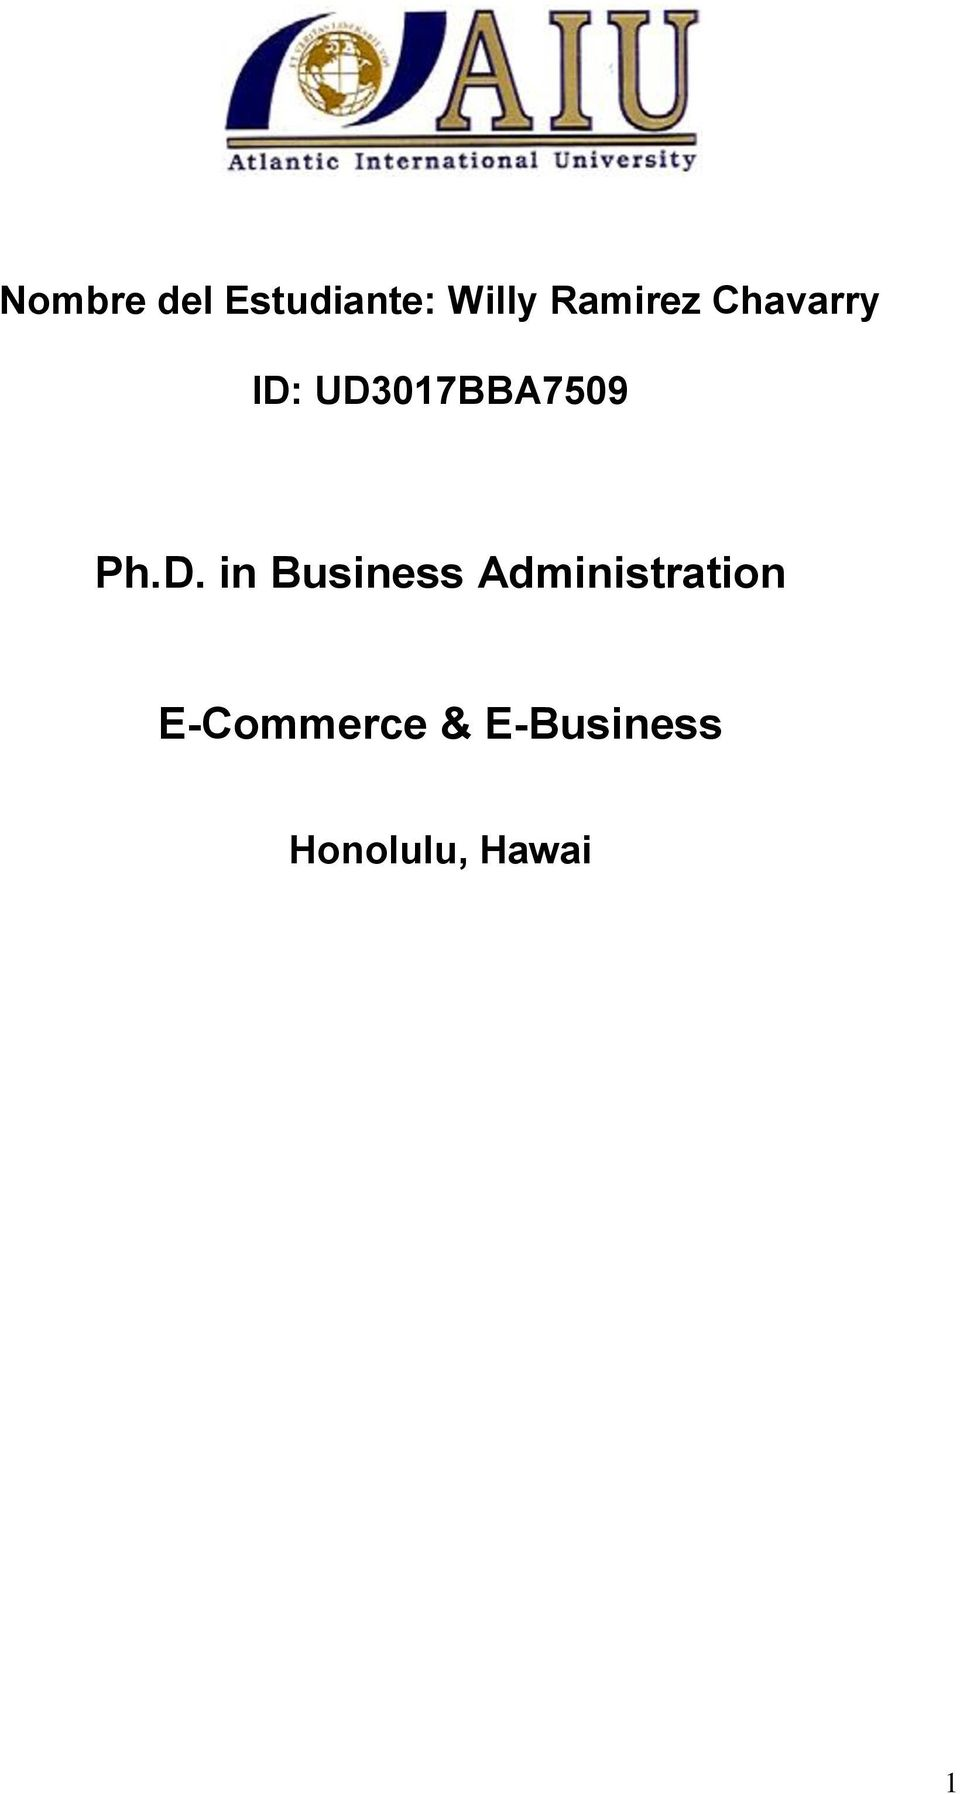 Ph.D. in Business Administration